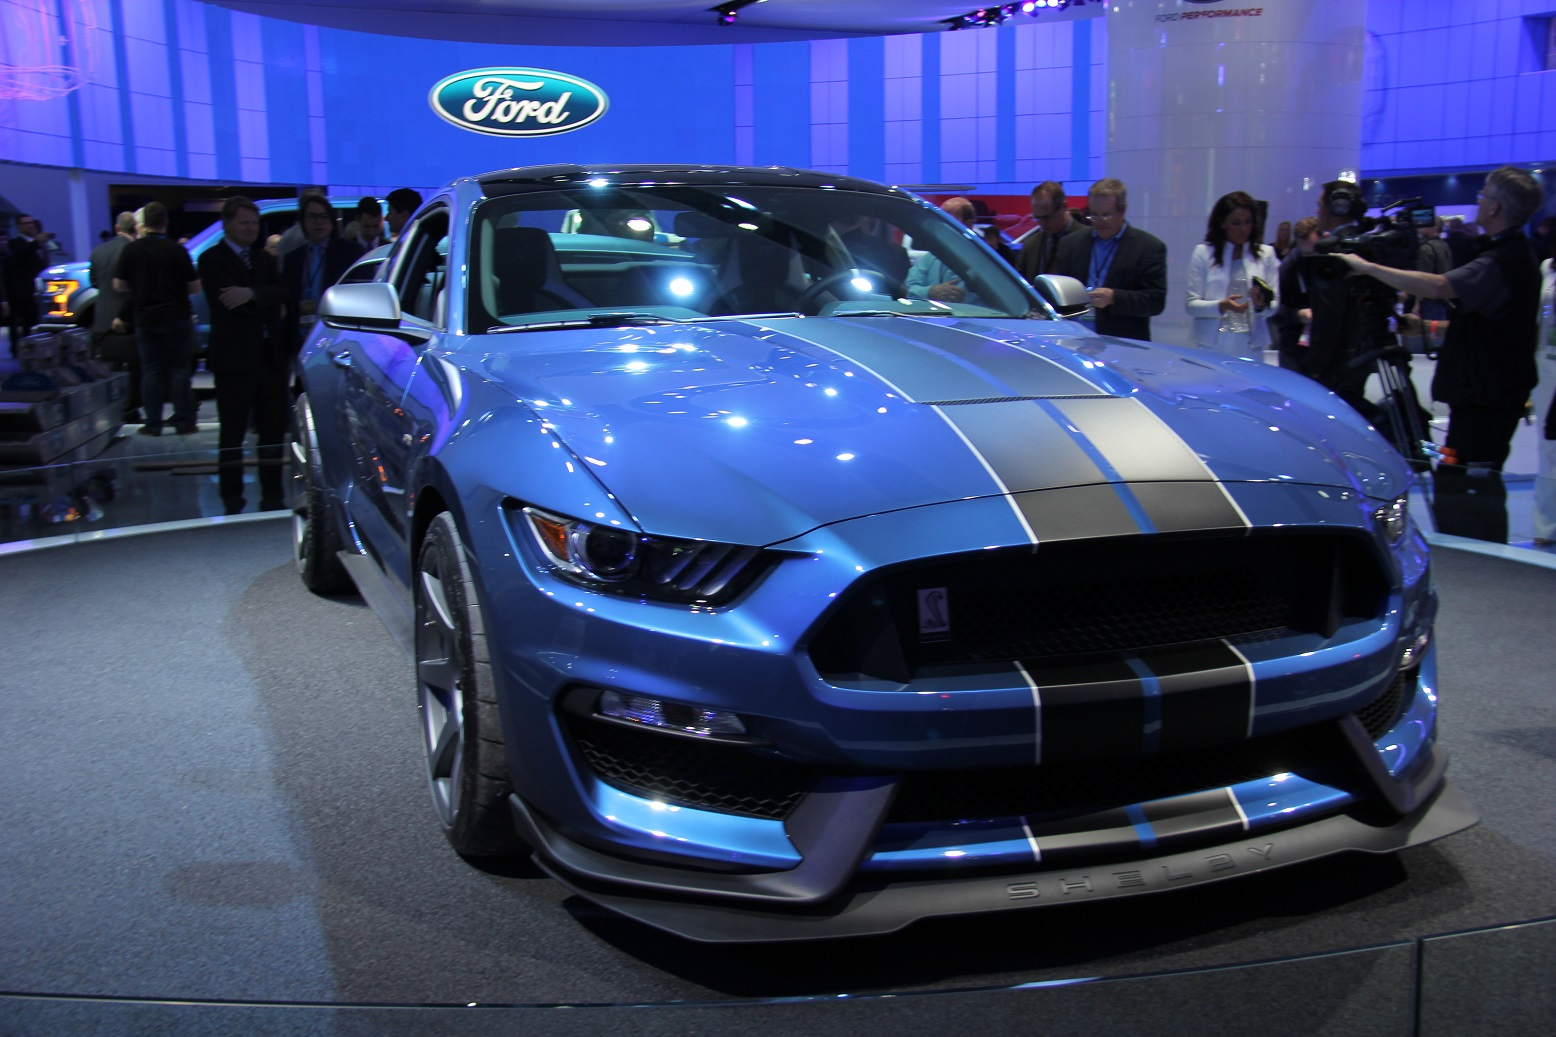 2016 Ford Mustang Shelby Gt350r Overview (Photo 32 of 47)